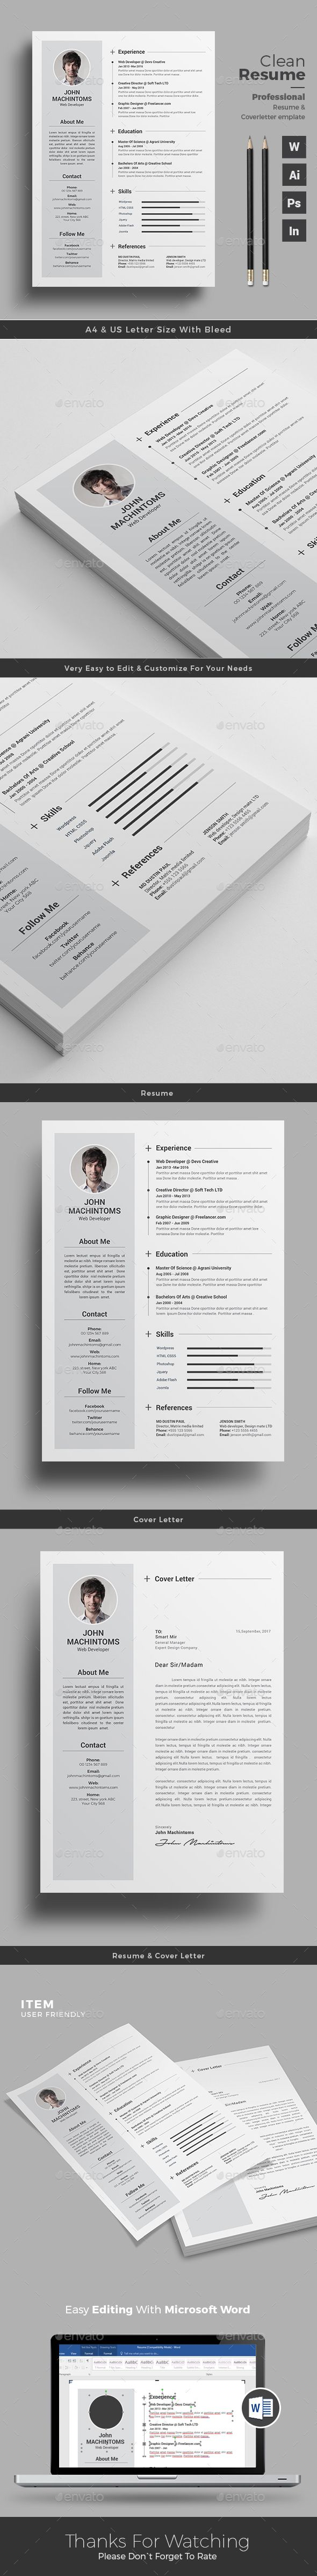 Best 20+ Free cover letter ideas on Pinterest | Free cover letter ...